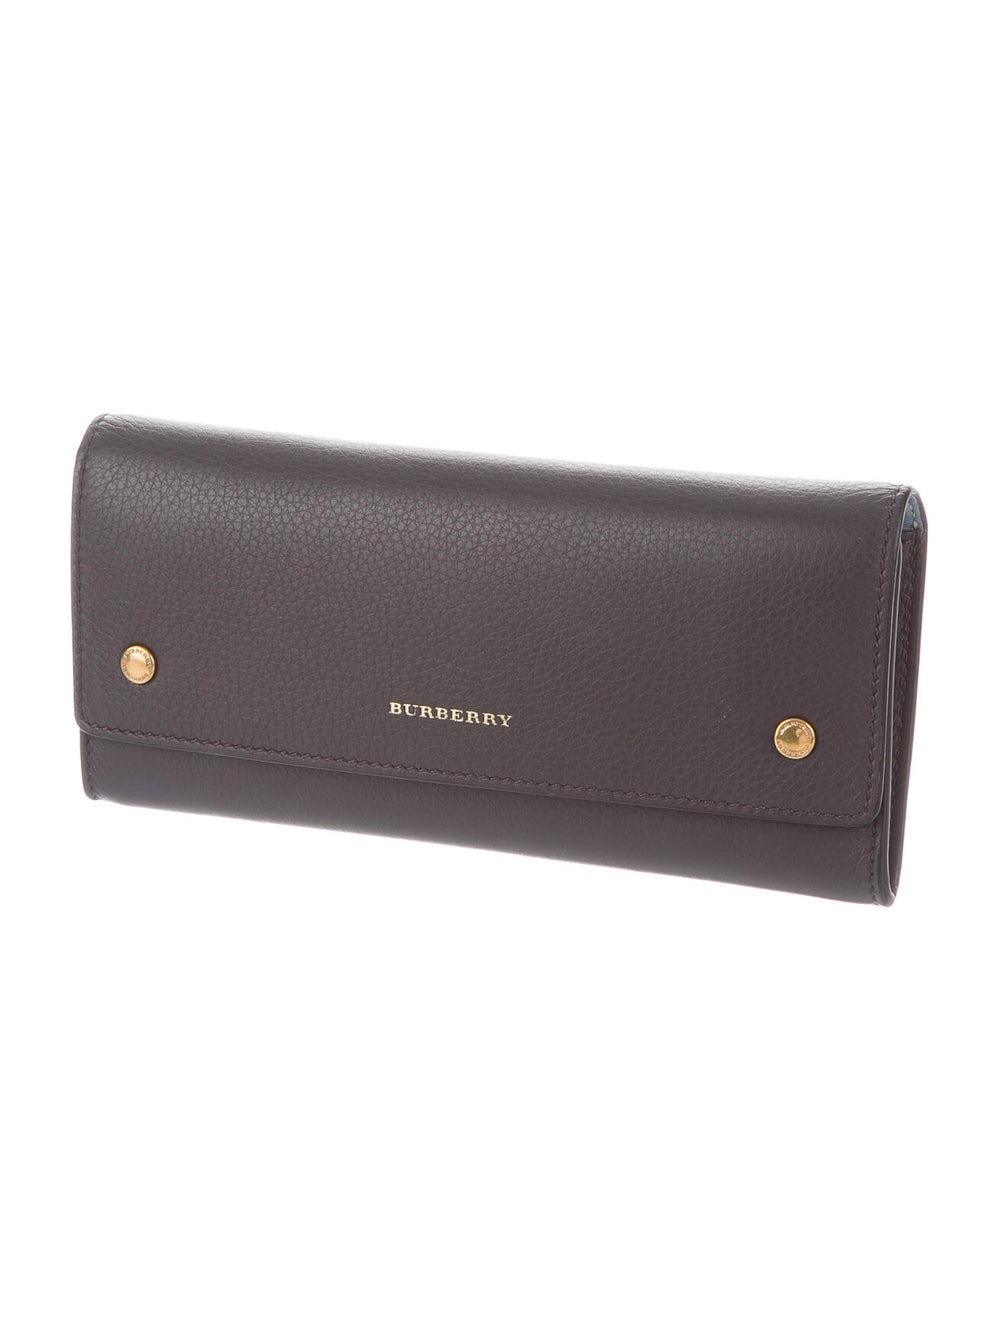 Burberry Leather Continental Wallet gold - image 3